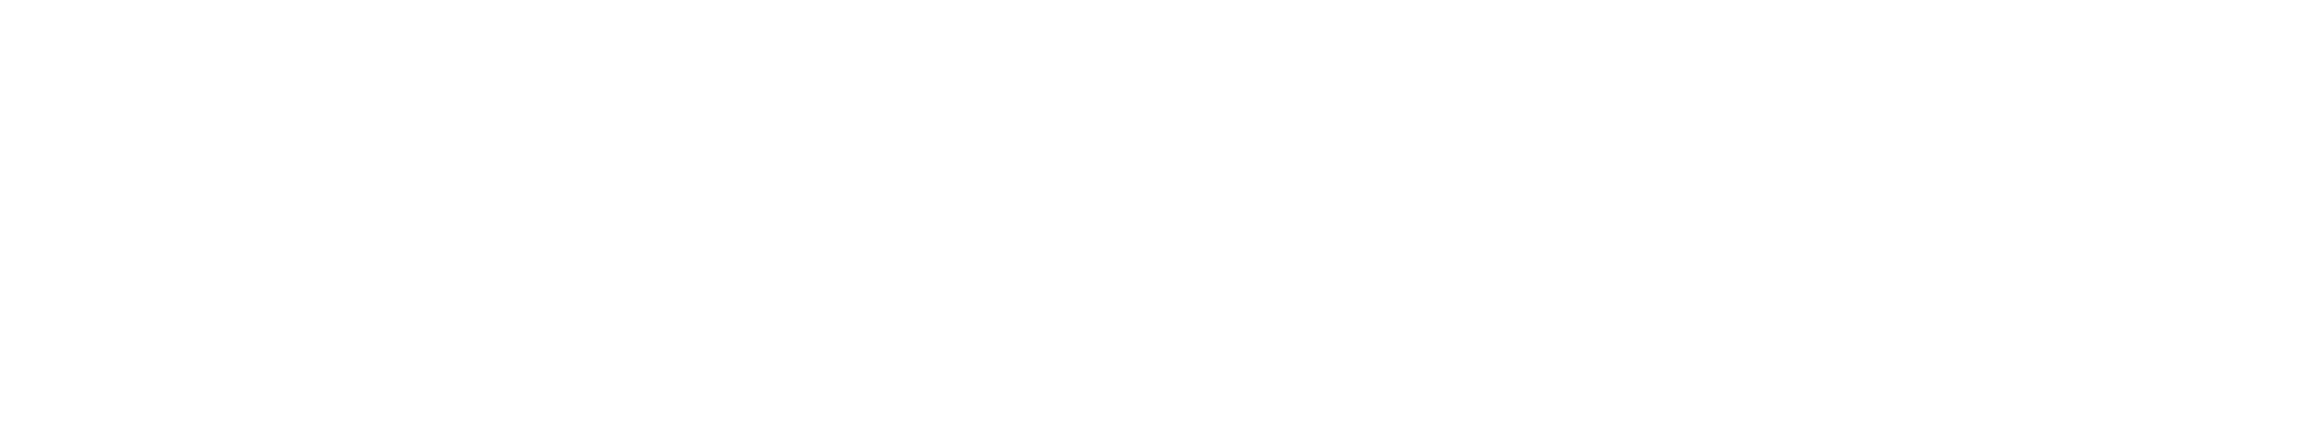 (Out of) Office Hours with Chris Lavigne